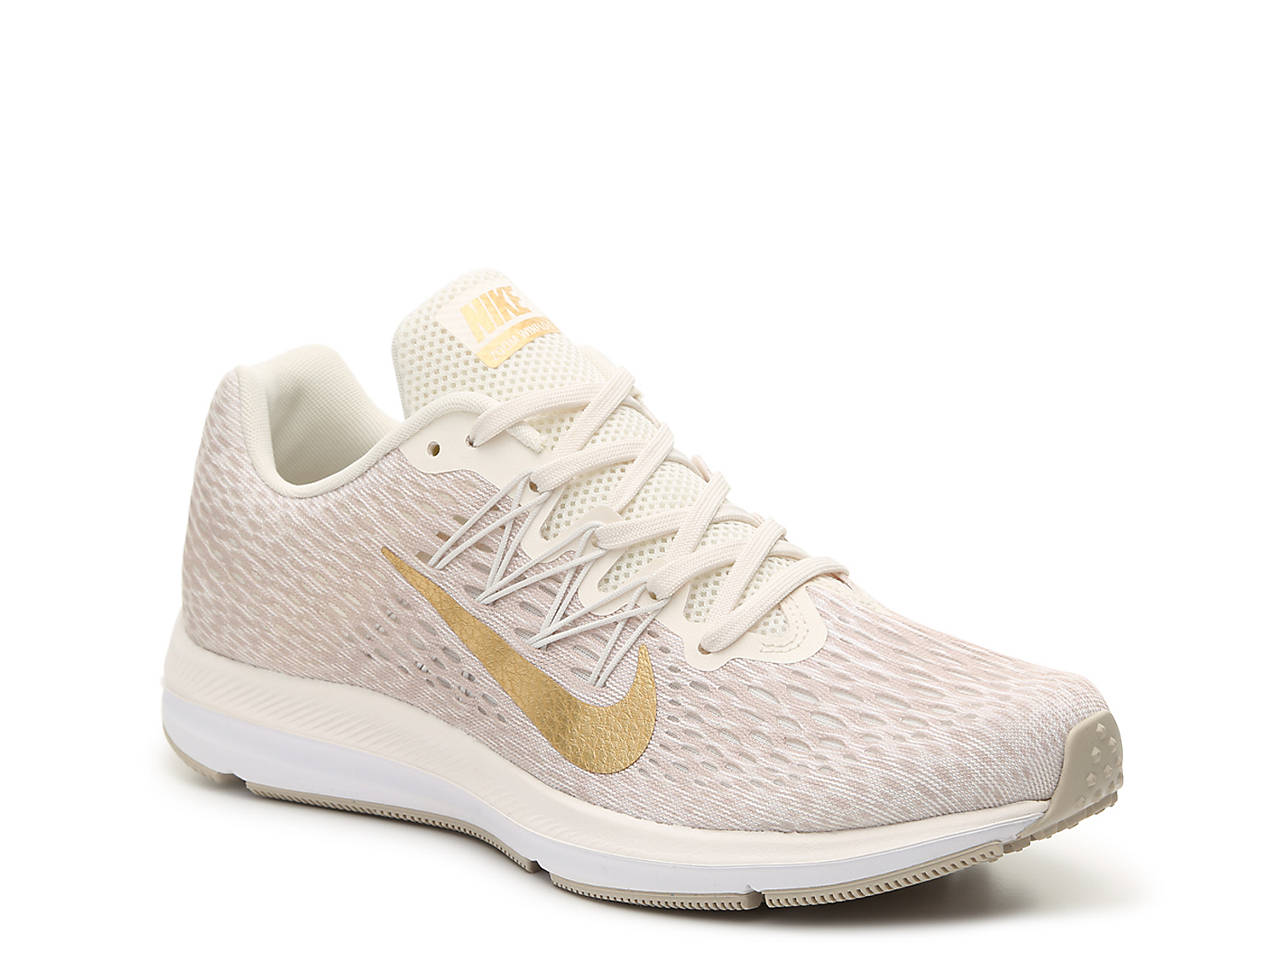 8f7a50558e54 Nike Zoom Winflo 5 Running Shoe - Women s Women s Shoes